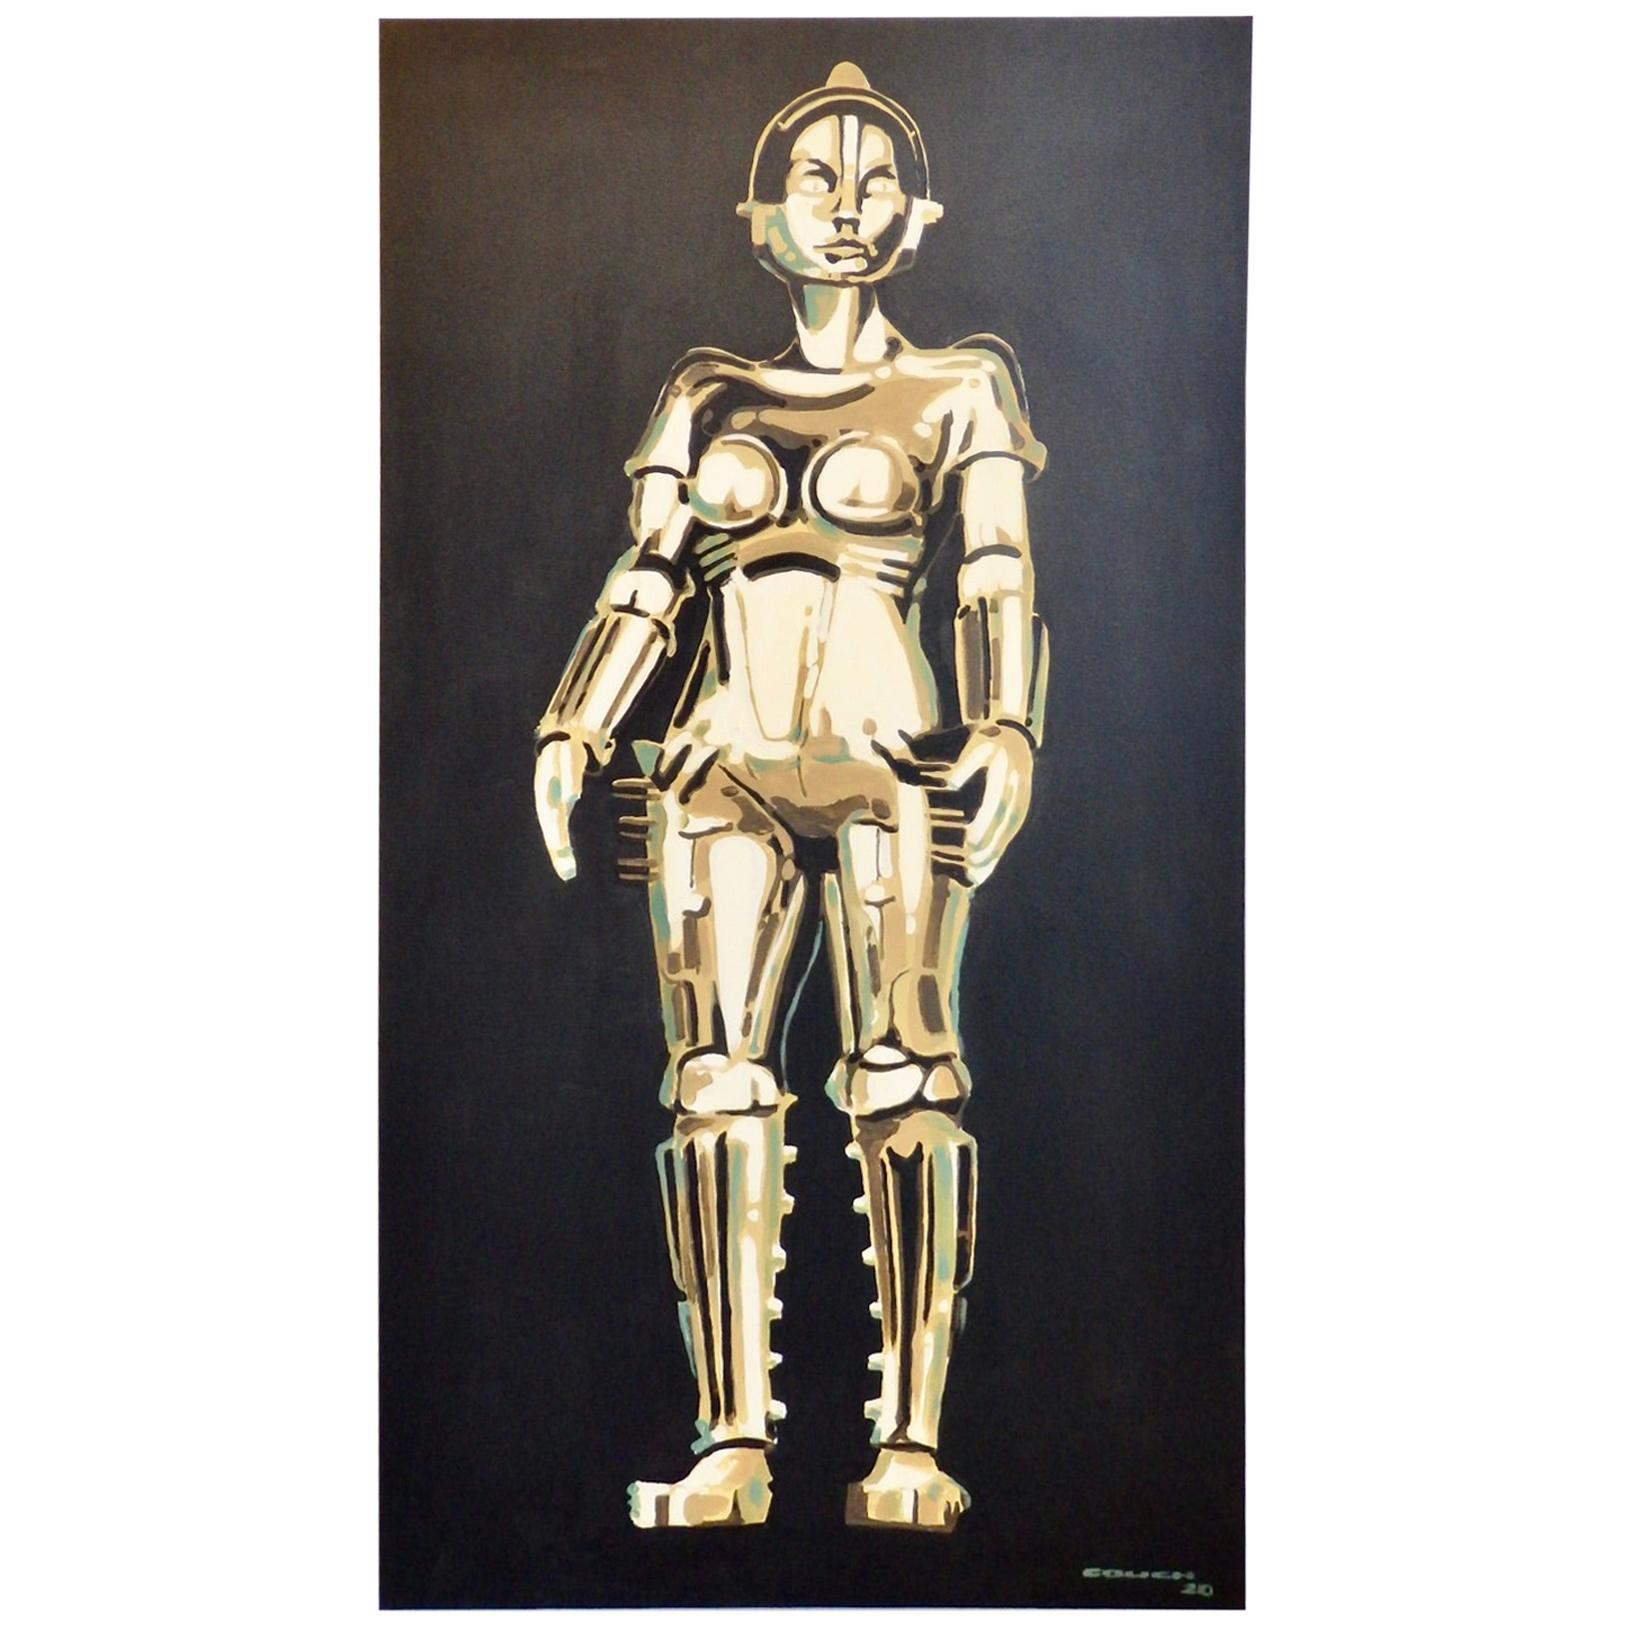 Detroit Artist Billy Couch Acrylic on Canvas Painting Metropolis Robot Maria